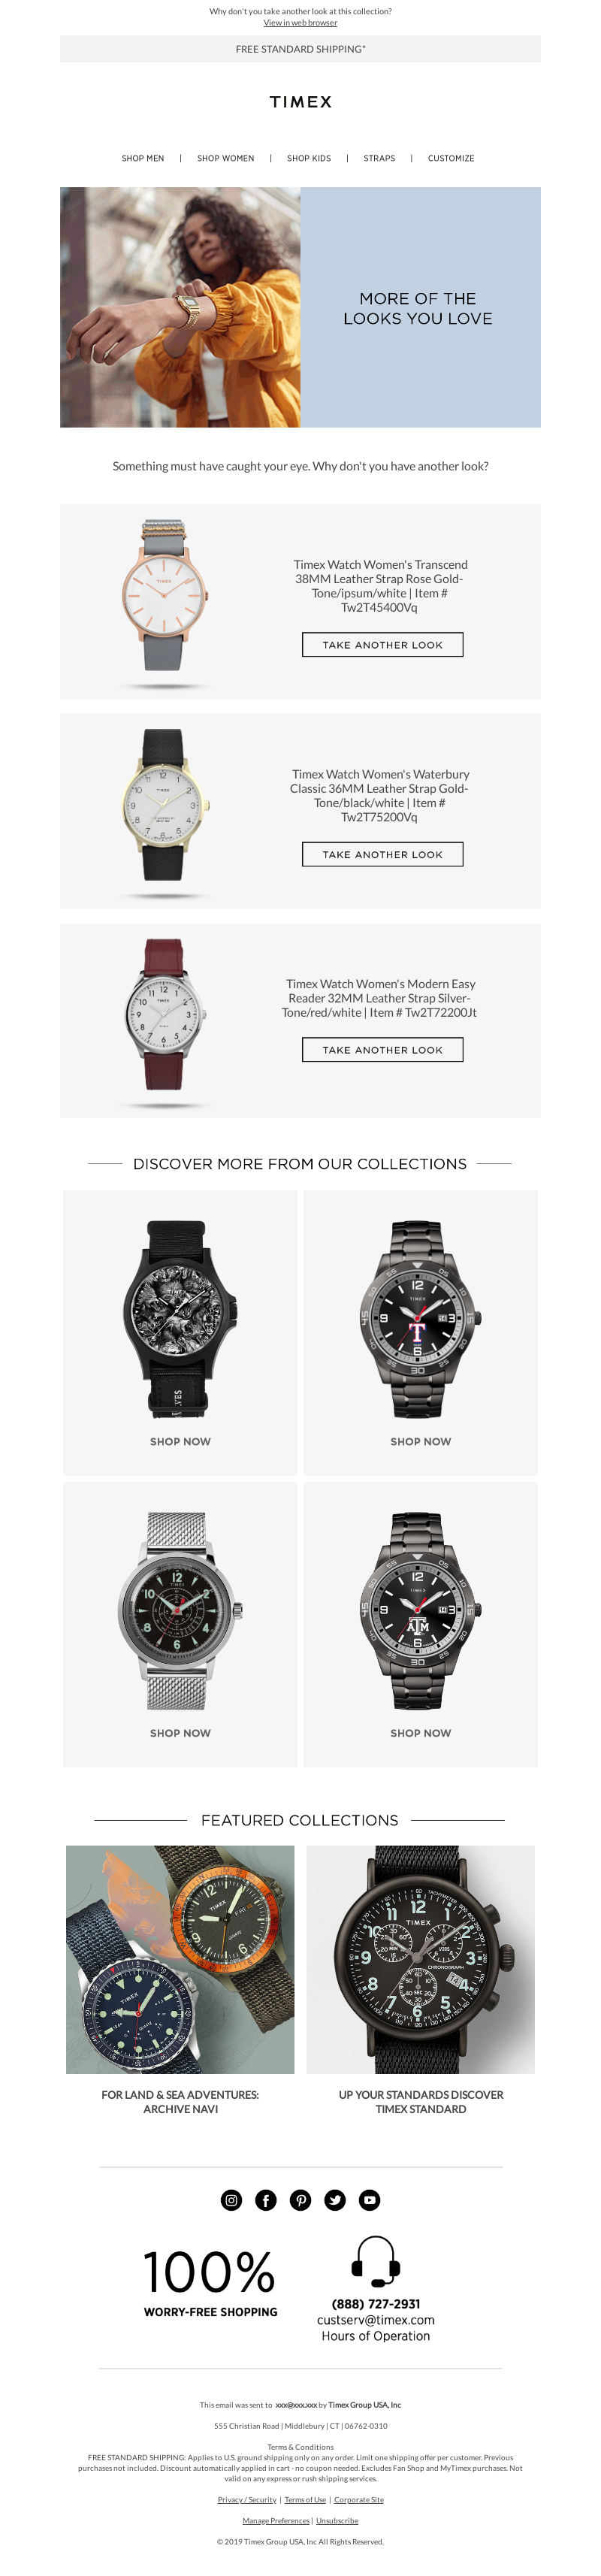 Timex - We like your style ⌚